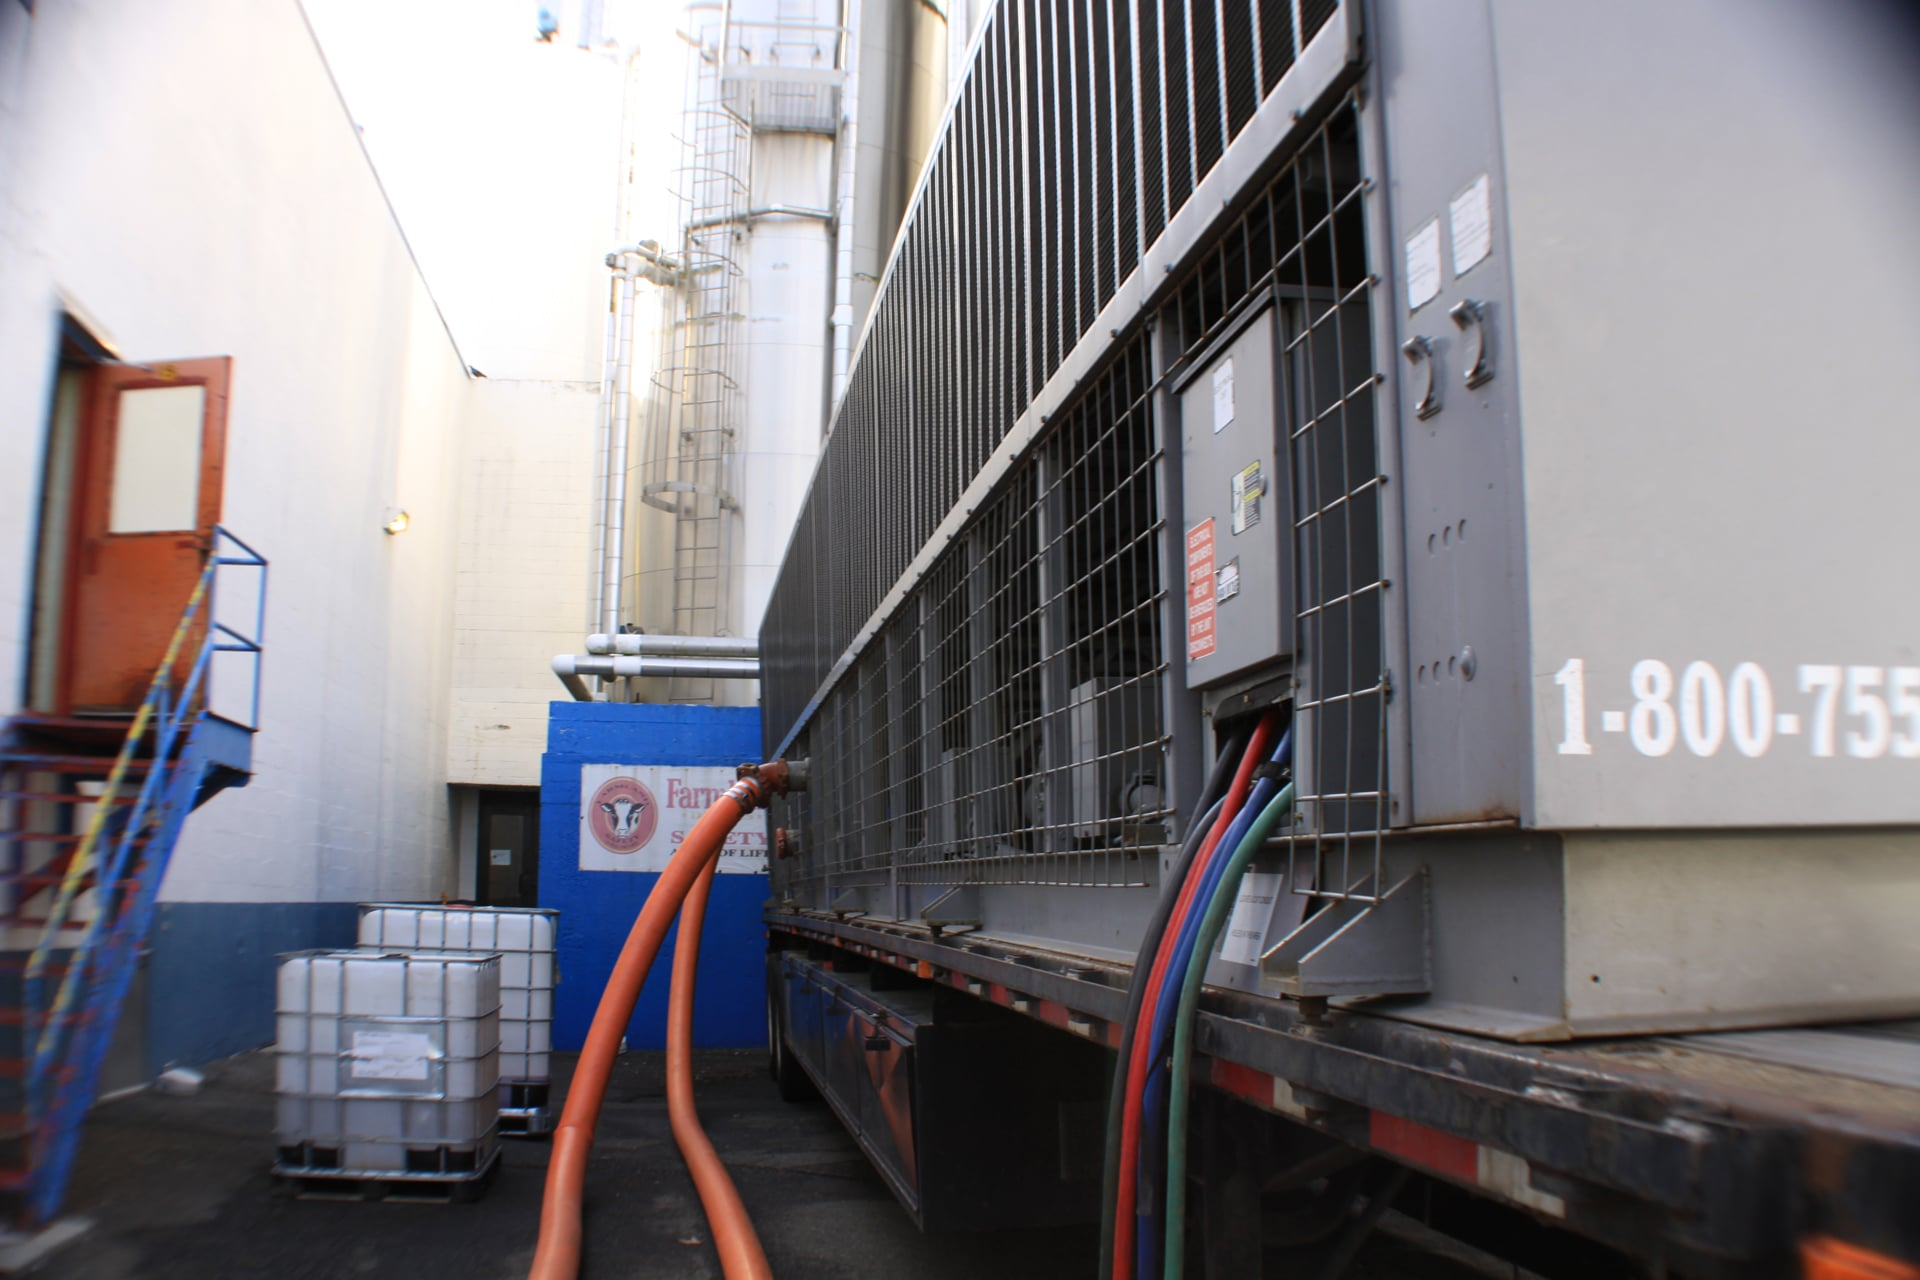 Temporary Chiller Lackawanna County PA, Air Cooled Chiller Rental Lackawanna County PA